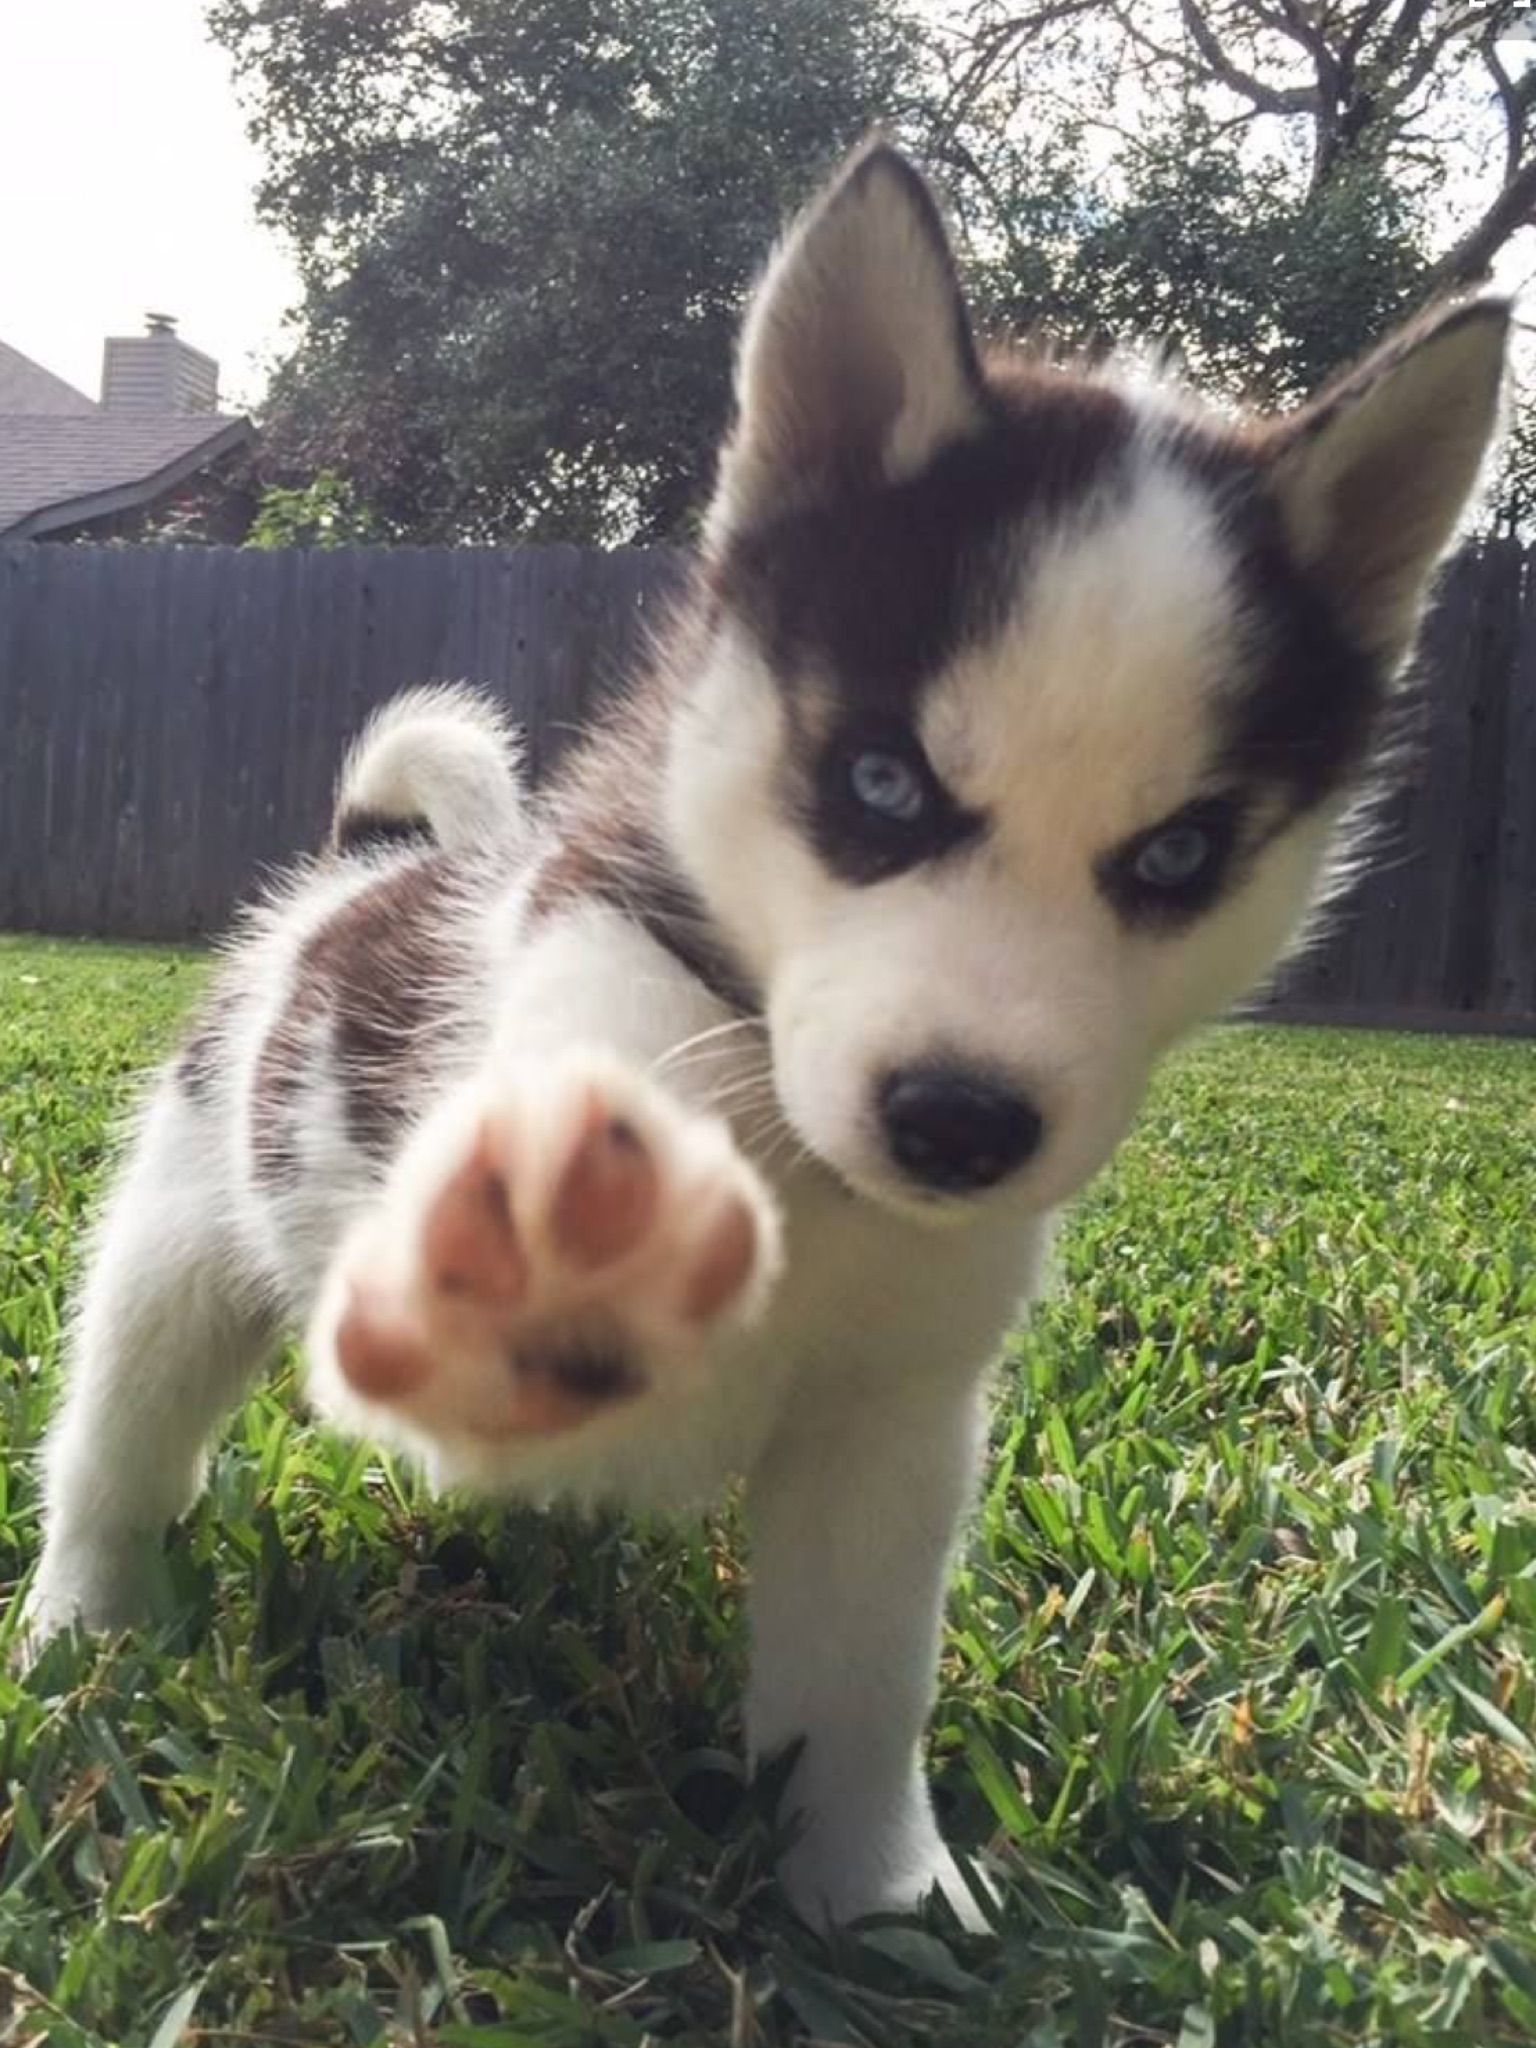 Pin By Maddi Rae On Funny High Five Cute Animals Cute Baby Animals Puppies